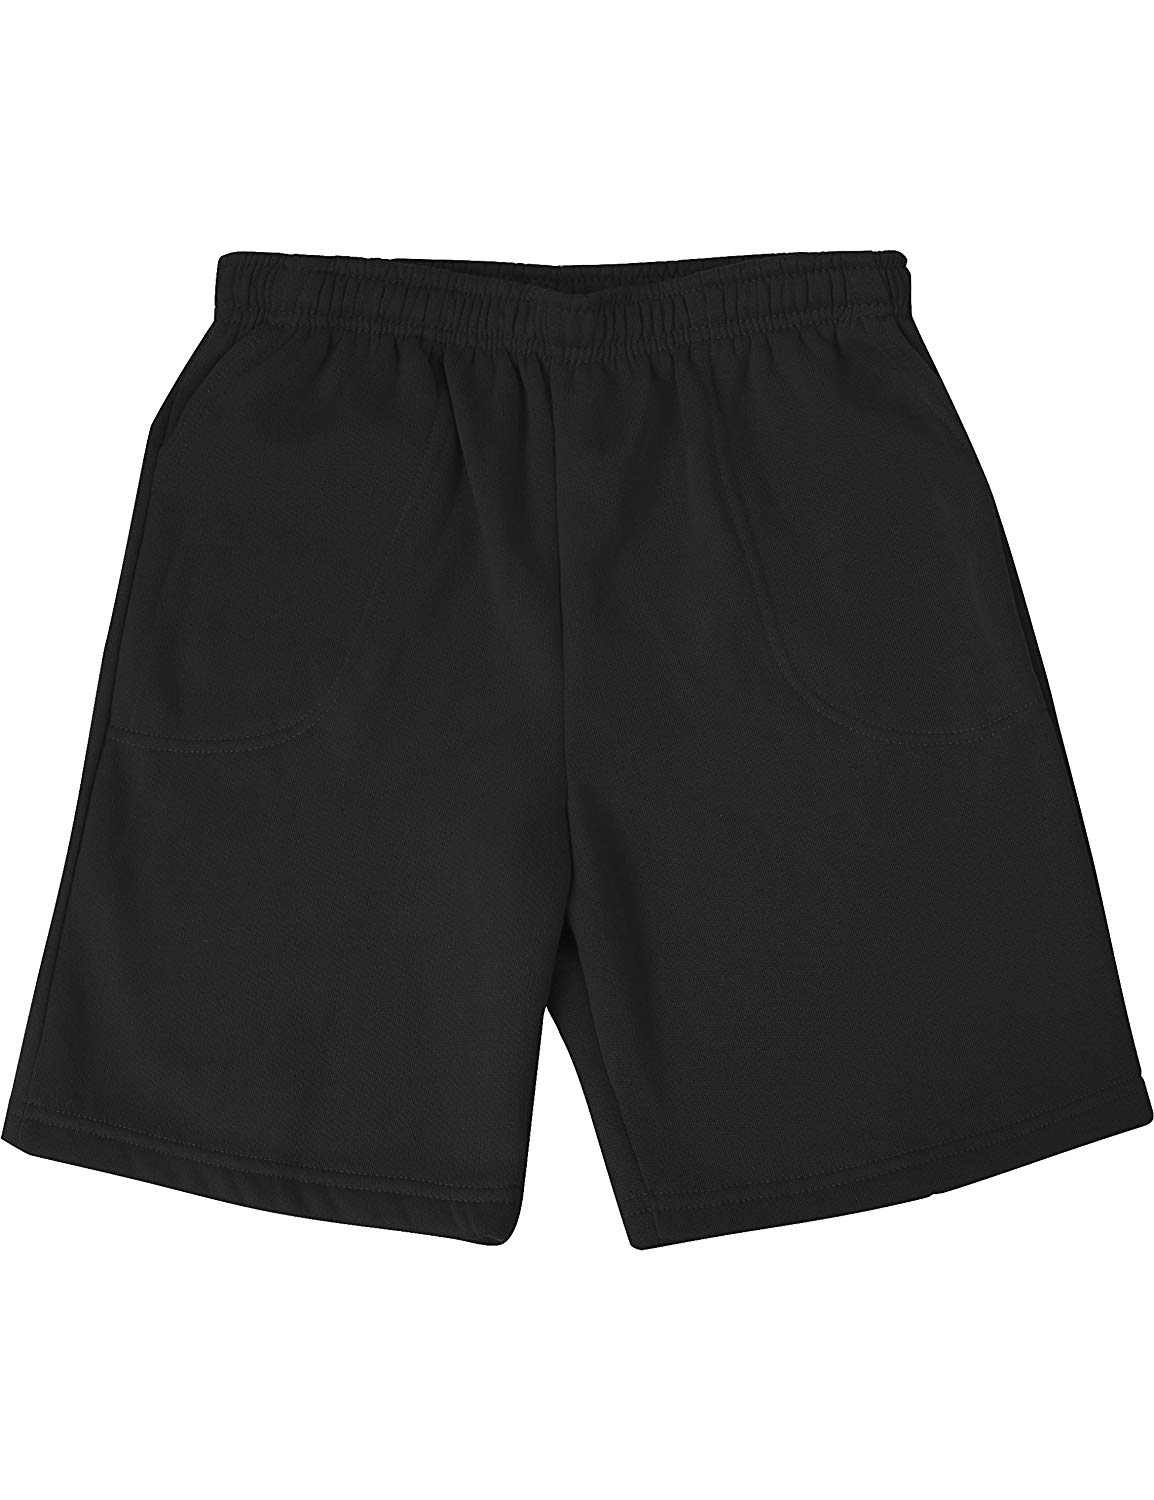 Ma Croix Mens Brushed Sweat Shorts Fleece Elastic Leisure Lightweight Pocket Short Pants